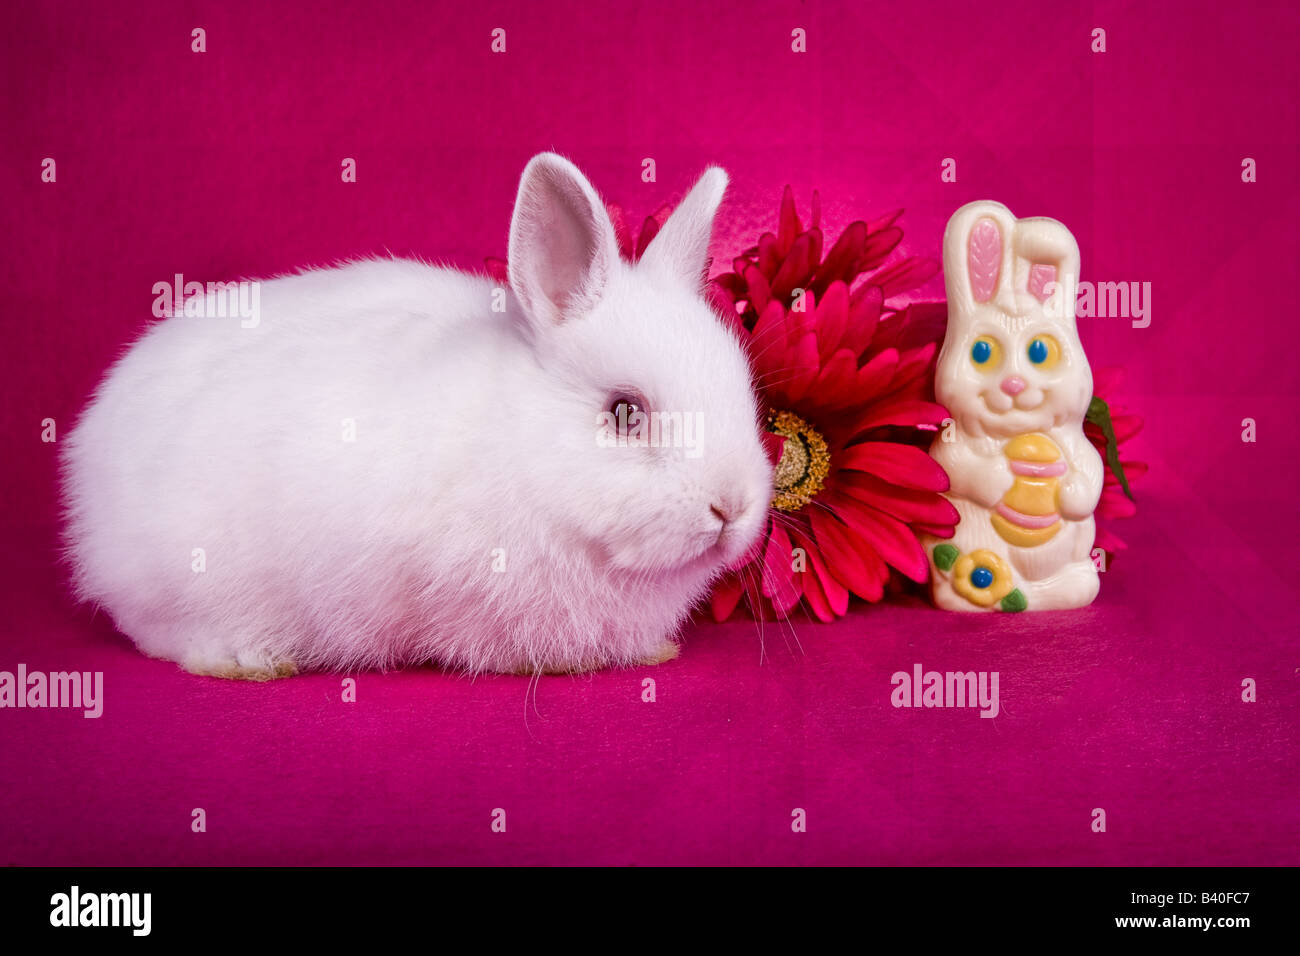 cute white baby easter netherland dwarf bunny rabbit on hot pink